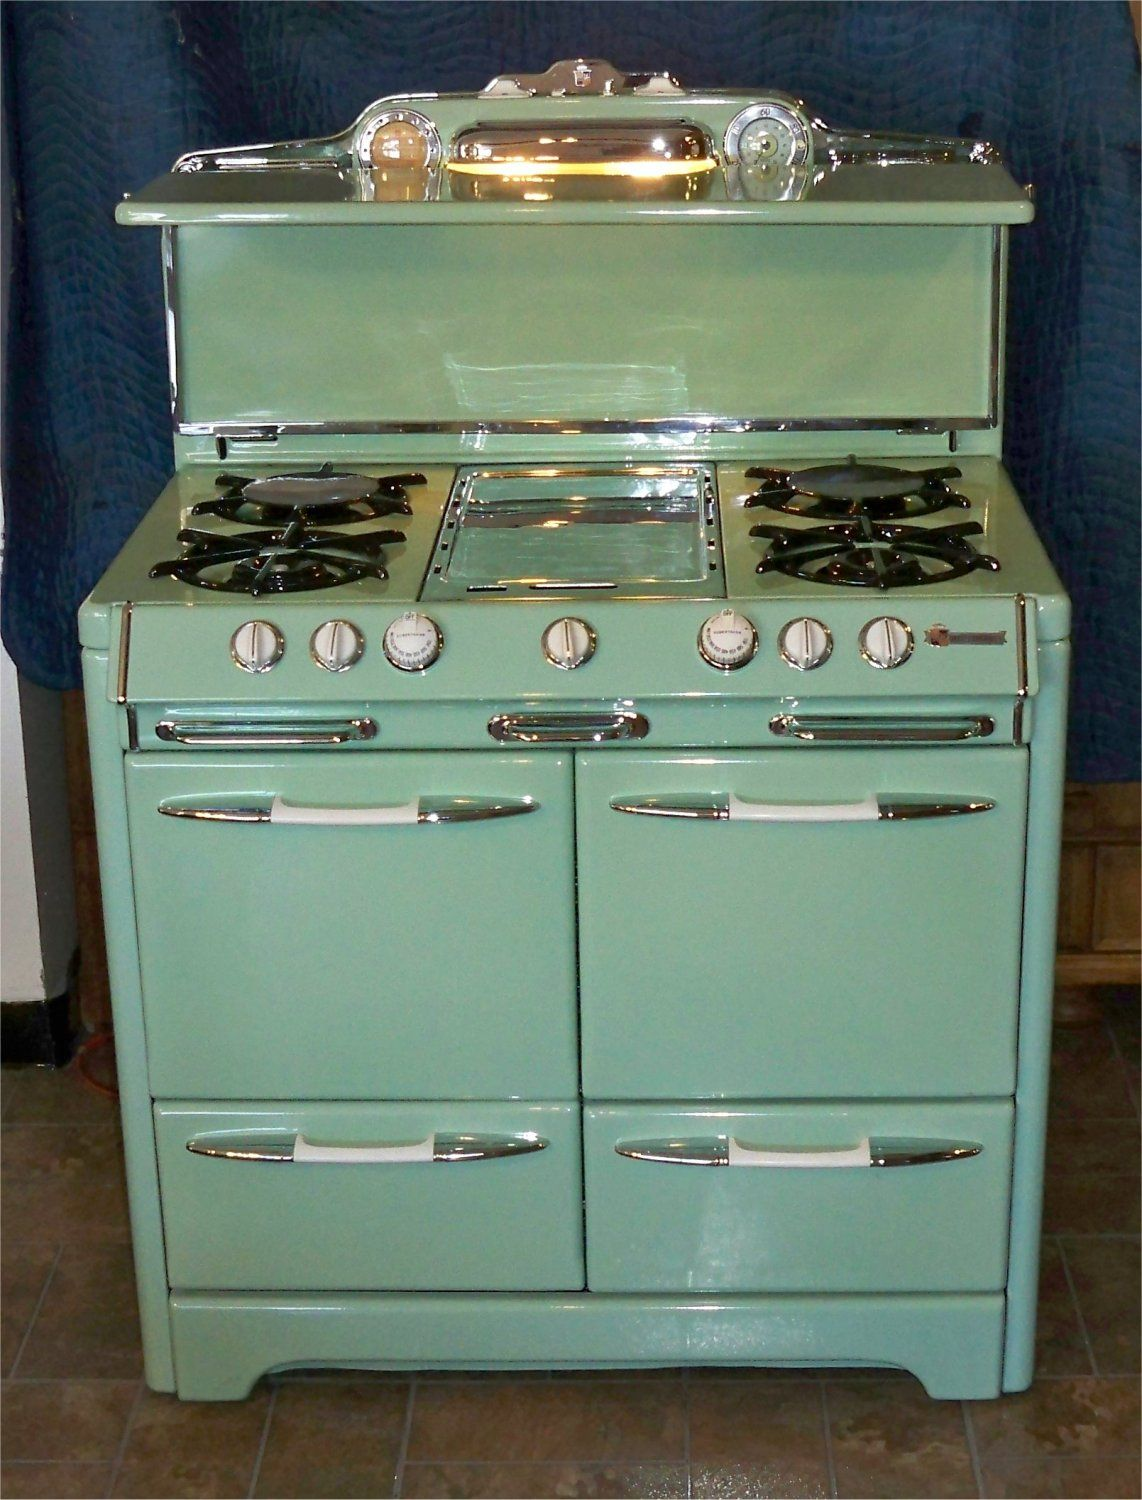 O'Keefe & Merritt... Love some of the other stoves on this site ...